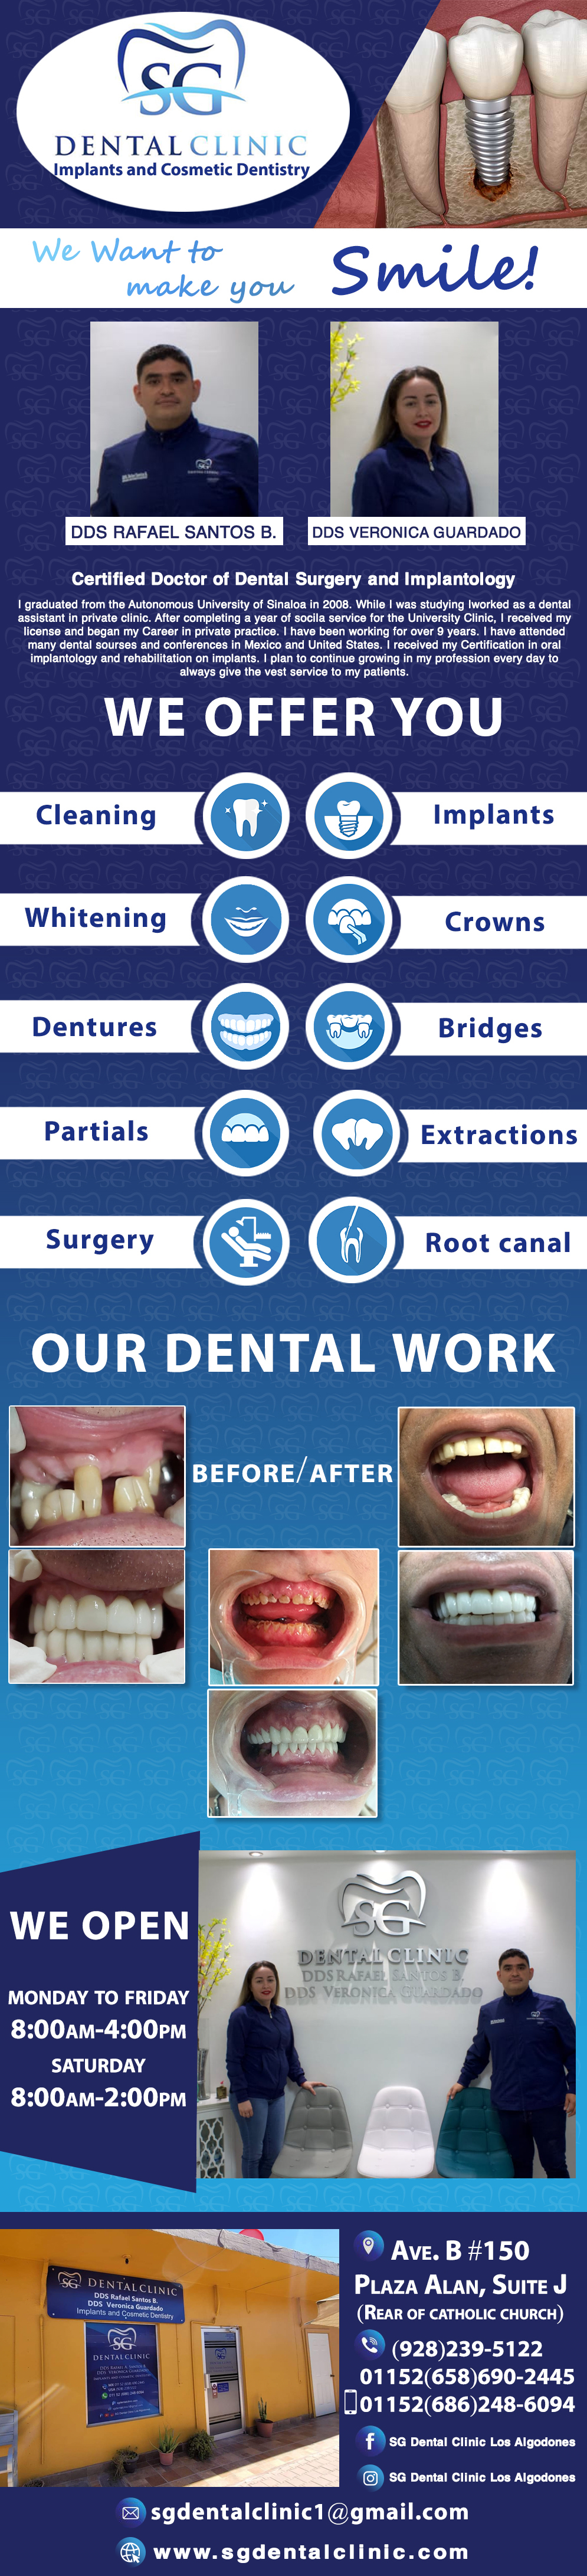 SG Dental Clinic D.D.S. Rafael Santos B. in Algodones  in Algodones  Porcelain crown Veneers (metal free crown) Jackets Gold crown Crown for implant Flexible partial Metal partial whith comfort hook Metal partial Extractions Wisdom molar regular extraction Wisdom molar surgery Cleaning Deep Cleaning Bleanching (with lasser) Dentures (full set) Dentures with porcelain teet Dentures (upper or lower) Dentures relining Dentures with mollo Dentures repair Lower mini implants Upper mini implants White filings Individual Implants Braces Root Canal Post Periodontics & Implants             Porcelain crown Veneers (metal free crown) Jackets Gold crown Crown for implant Flexible partial Metal partial whith comfort hook Metal partial Extractions Wisdom molar regular extraction Wisdom molar surgery Cleaning Deep Cleaning Bleanching (with lasser) Dentures (full set) Dentures with porcelain teet Dentures (upper or lower) Dentures relining Dentures with mollo Dentures repair Lower mini implants Upper mini implants White filings Individual Implants Braces Root Canal Post Periodontics & Implants